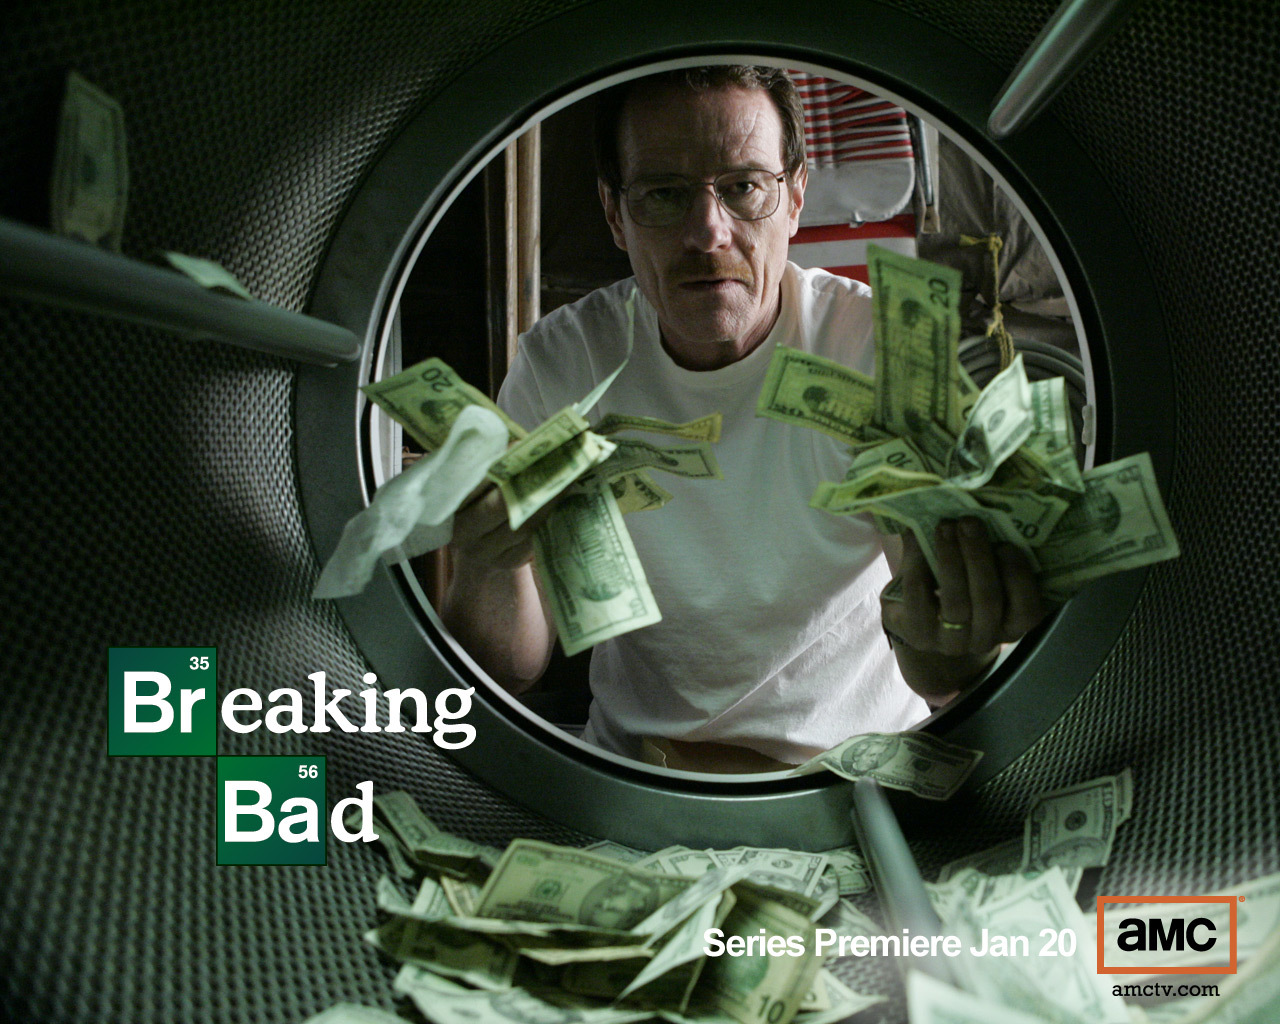 breaking bad bryan cranston HD Wallpaper